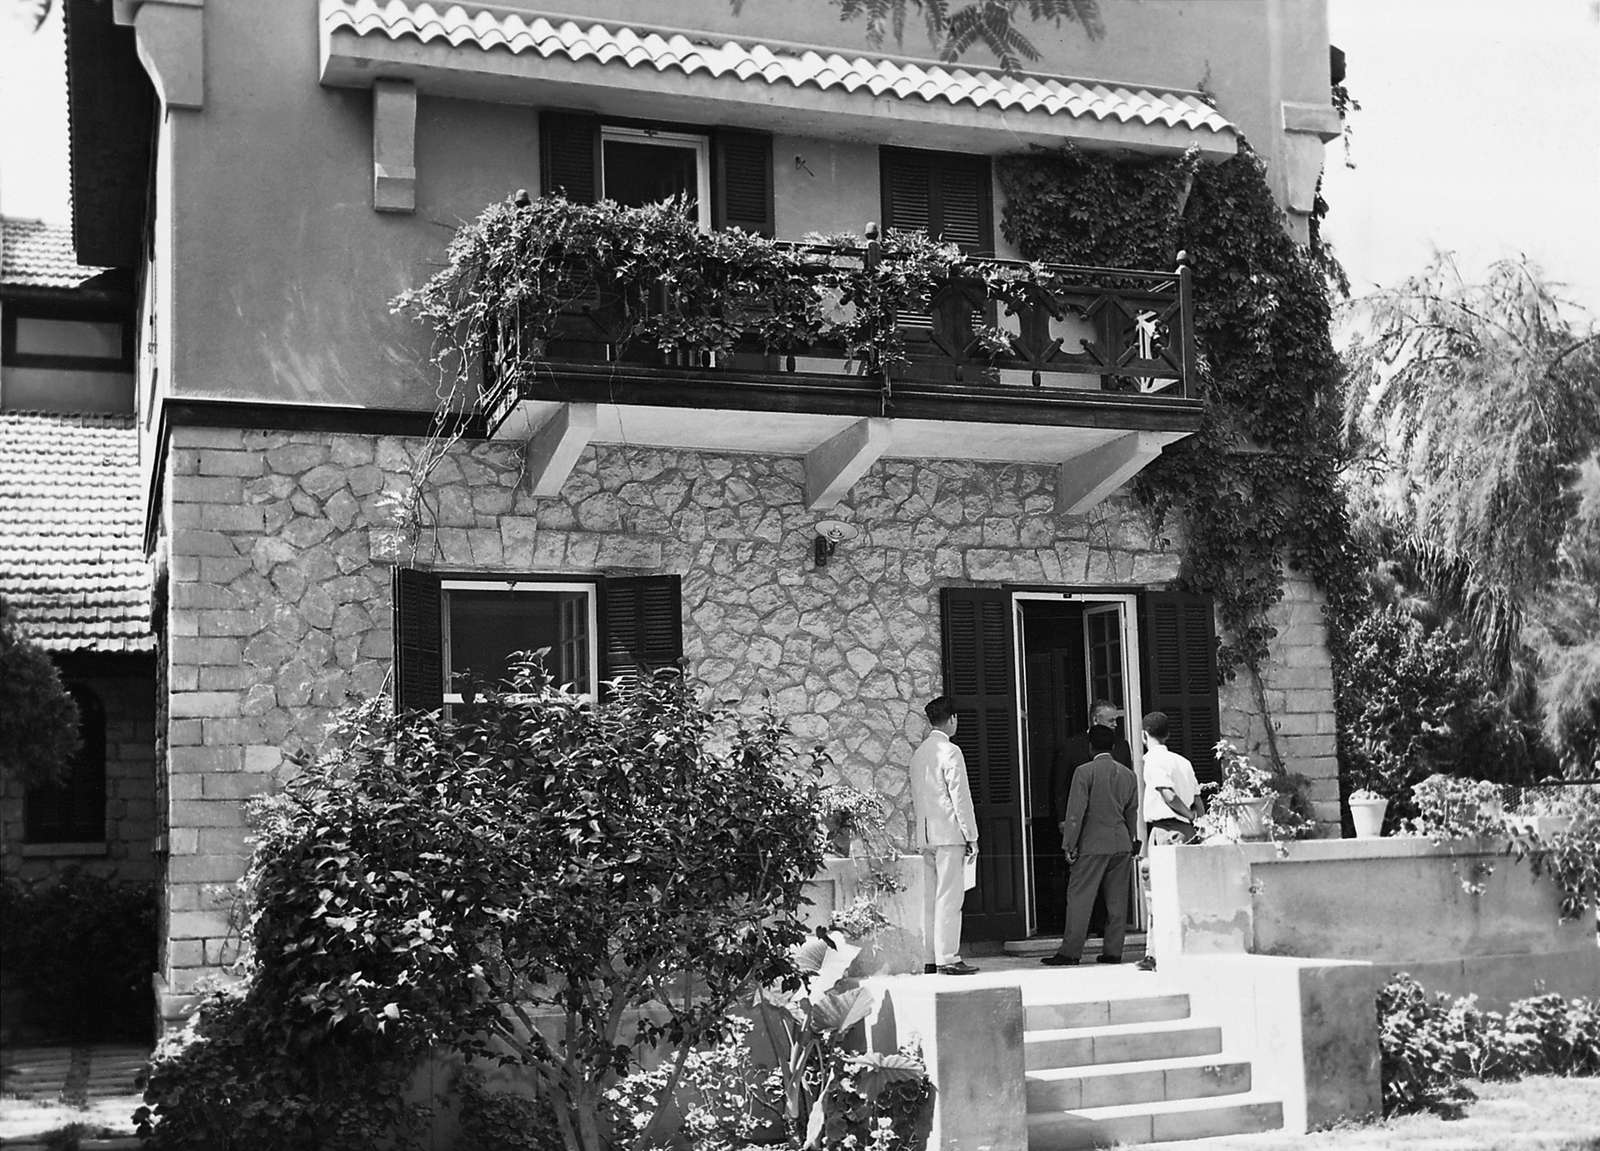 Cairo - Mid-Level Position Residence - 1965